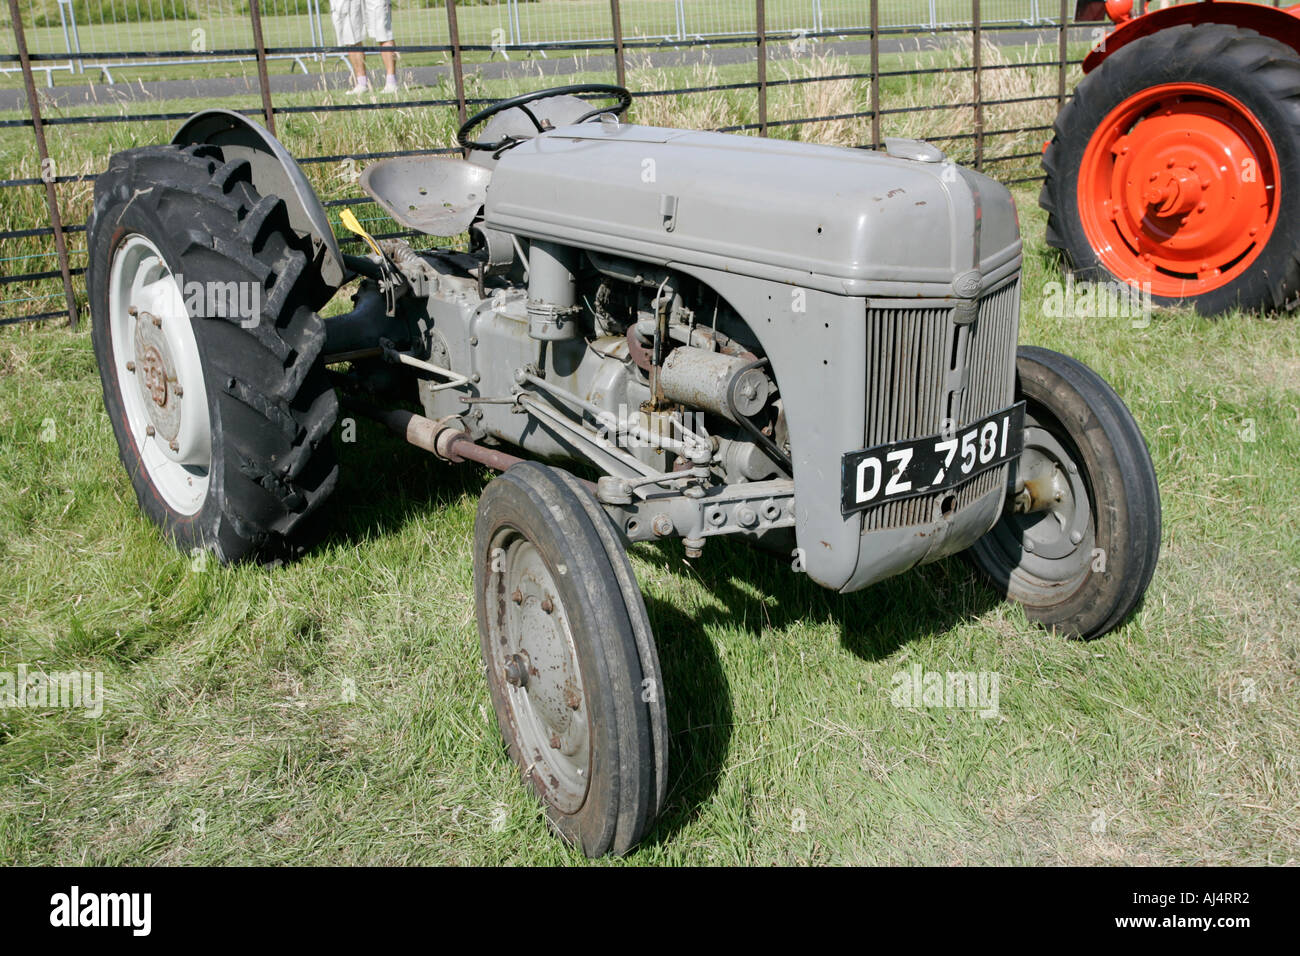 ford ferguson n-series classic tractor during vintage